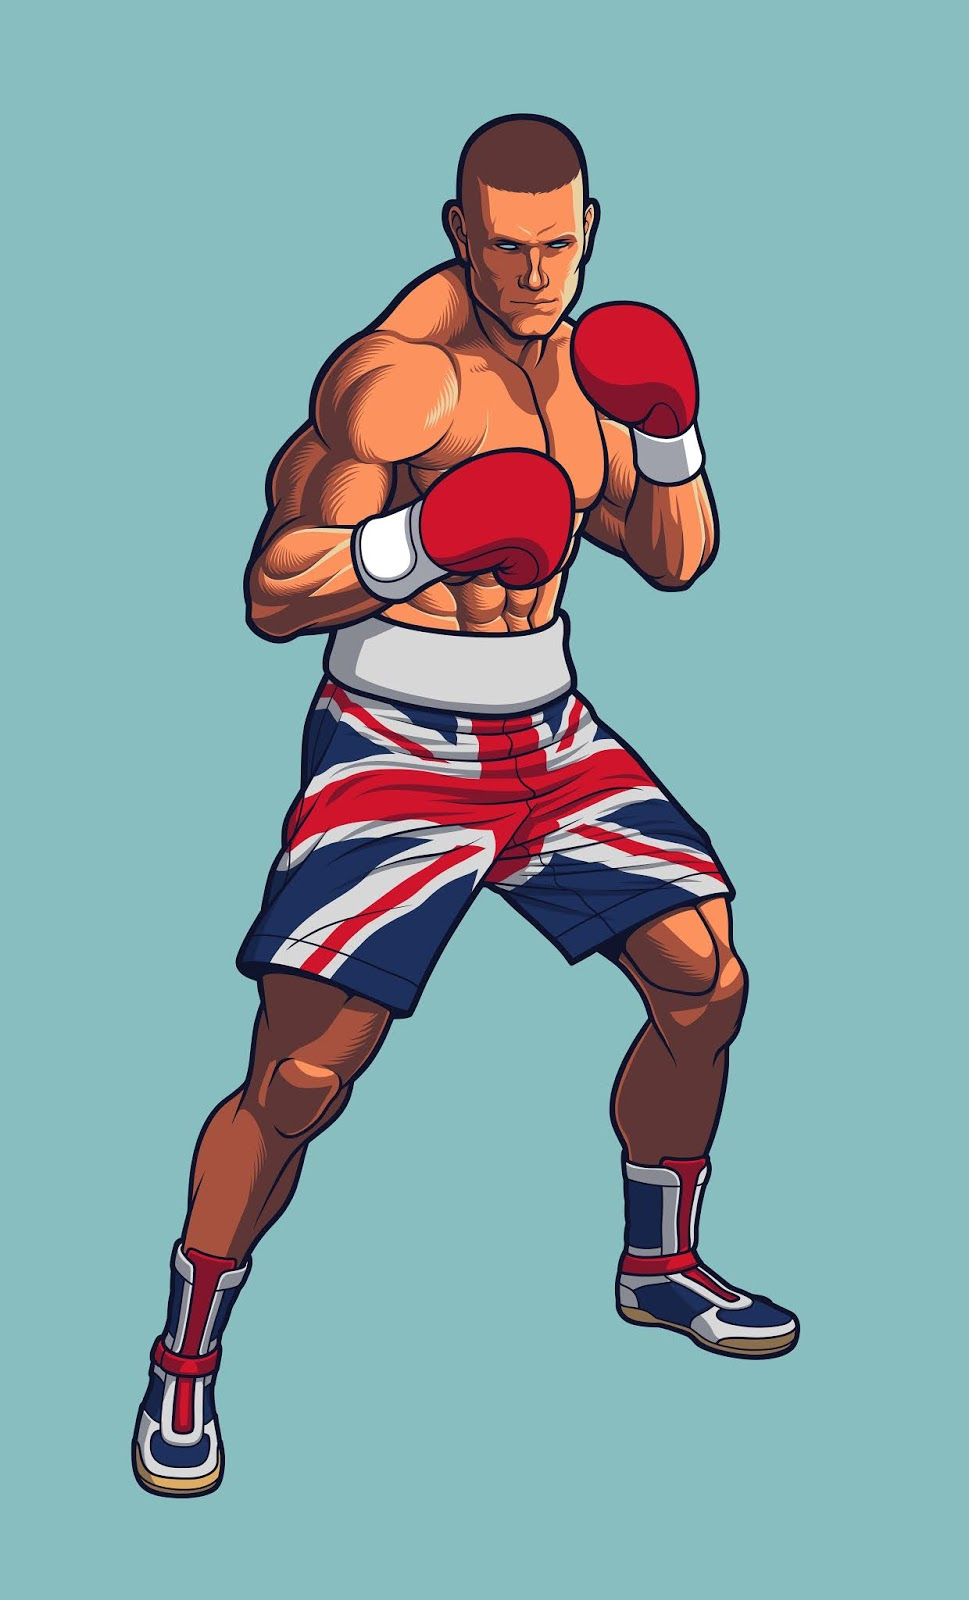 Boxing Fighter Wearing Uk Flag Shorts.jpg Free Download Vector CDR, AI, EPS and PNG Formats